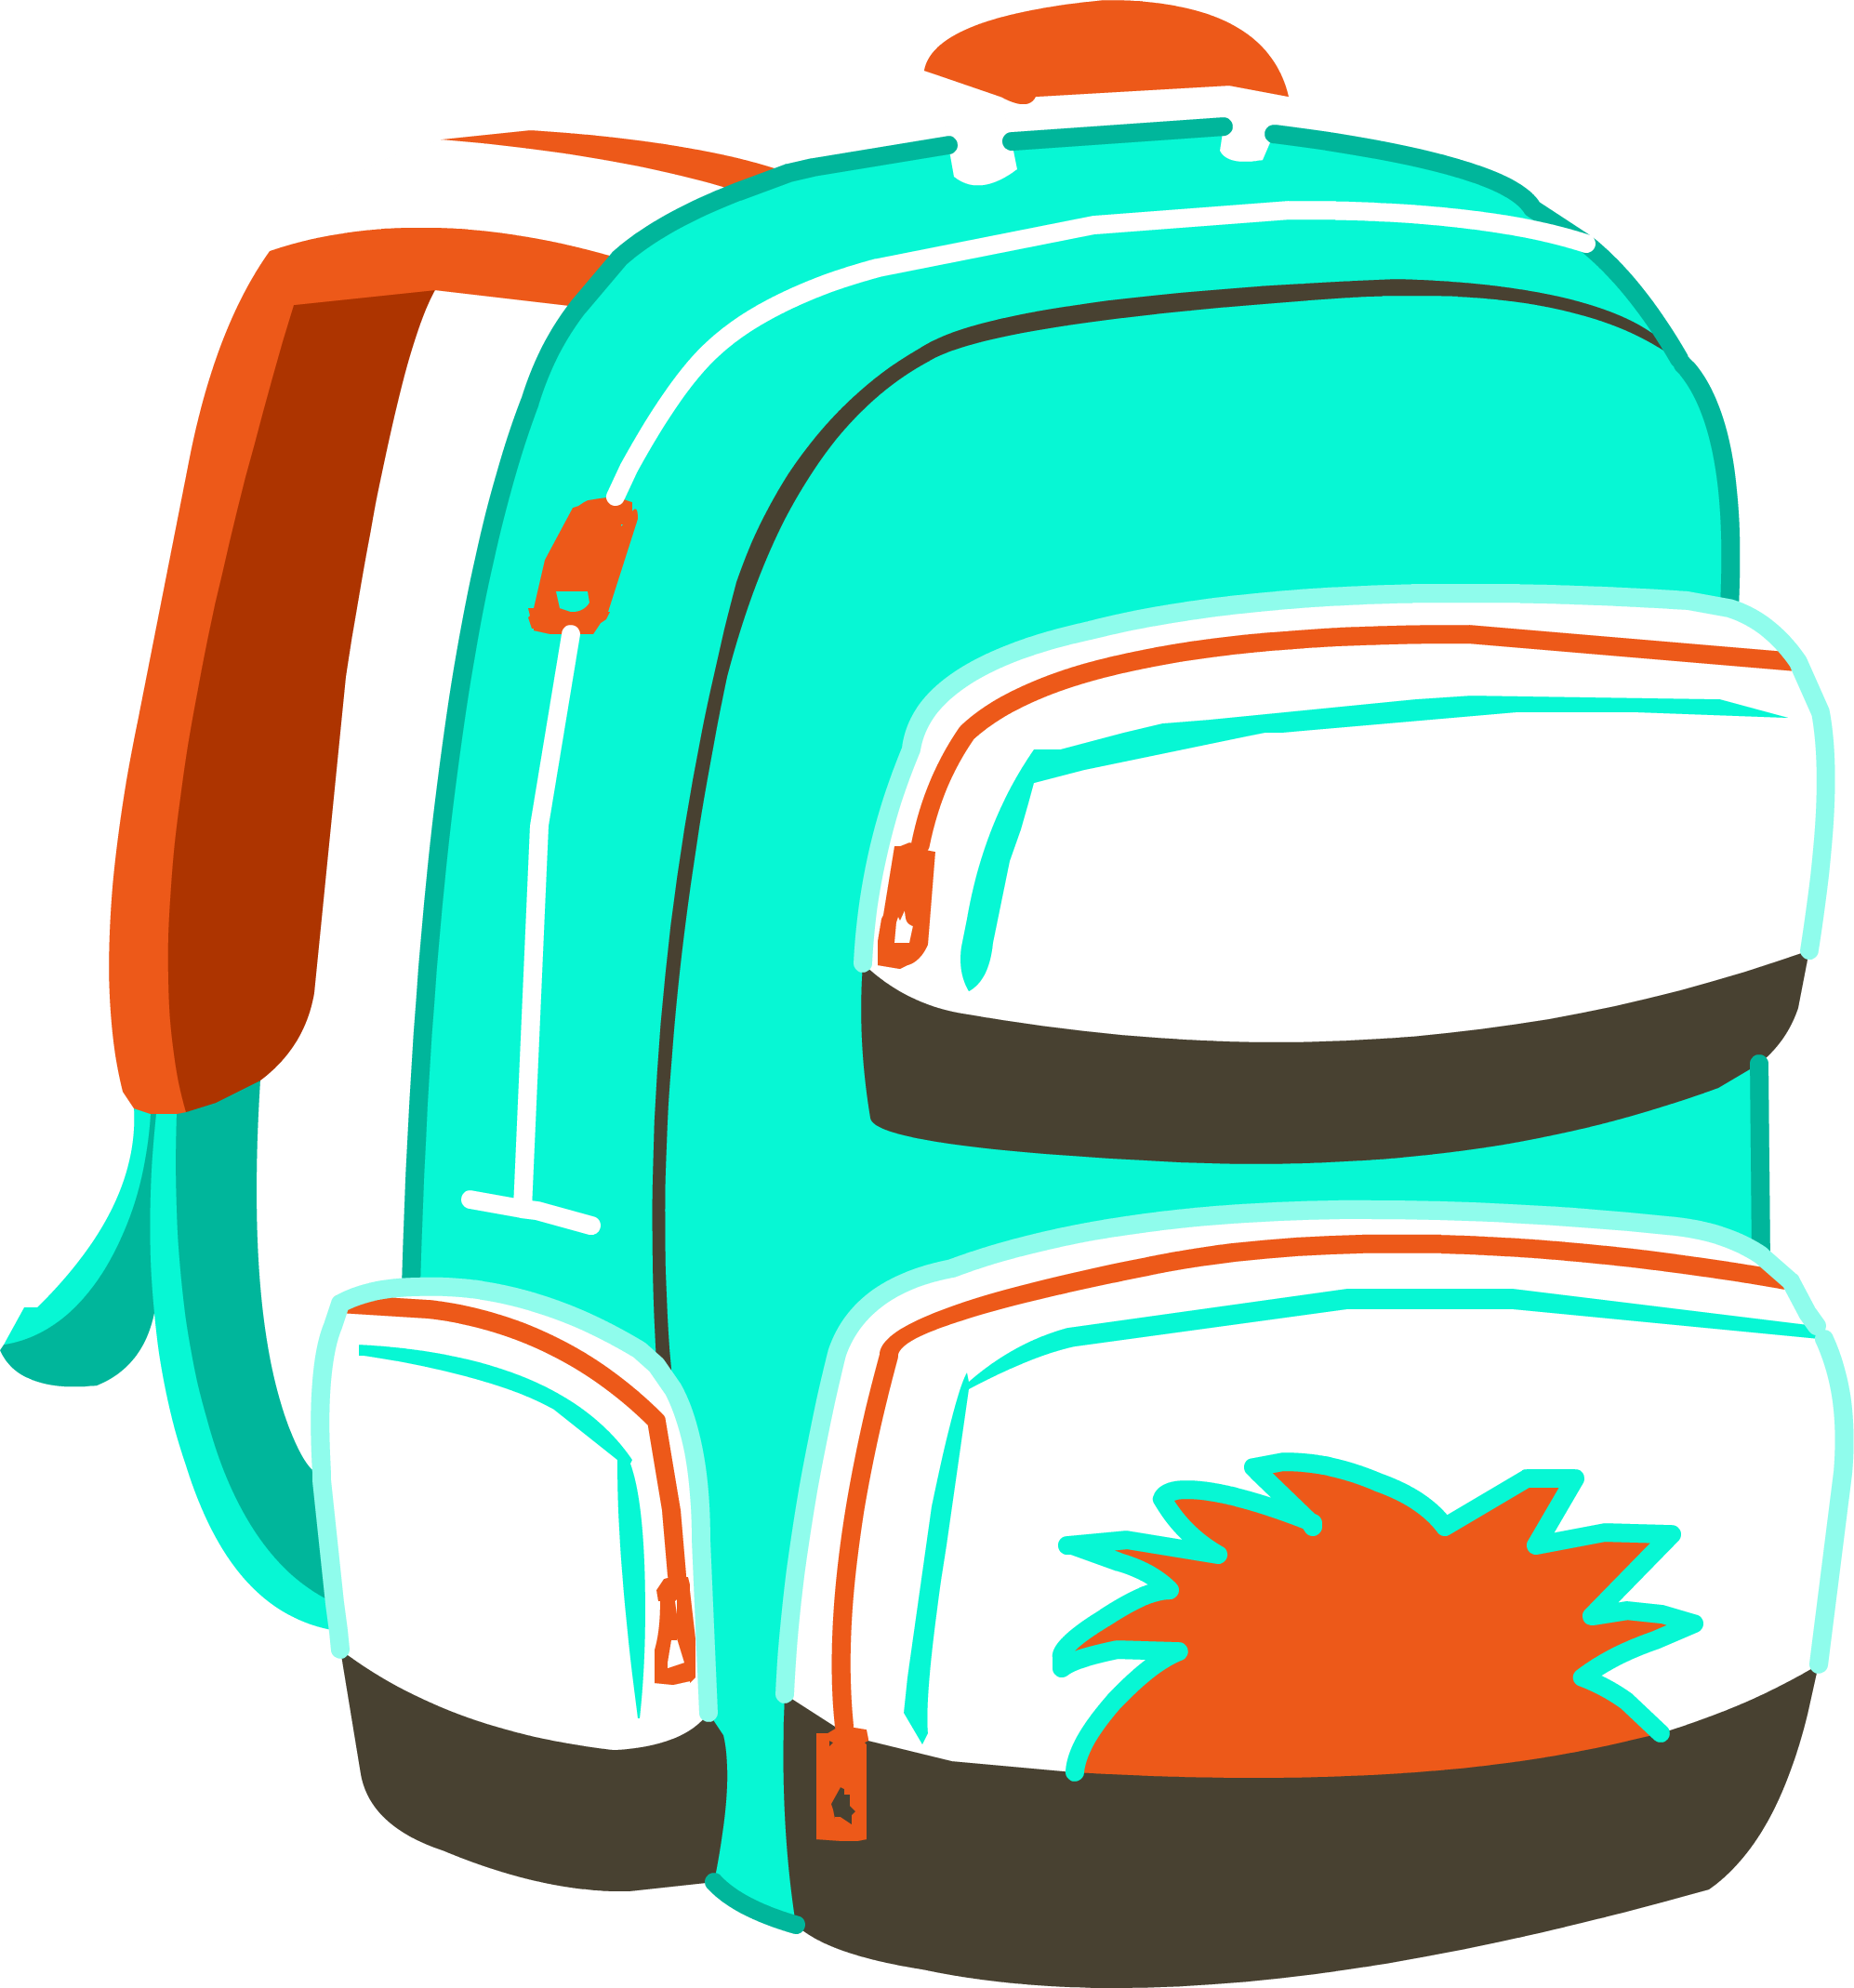 Clipart backpack blue item. Limited edition club penguin